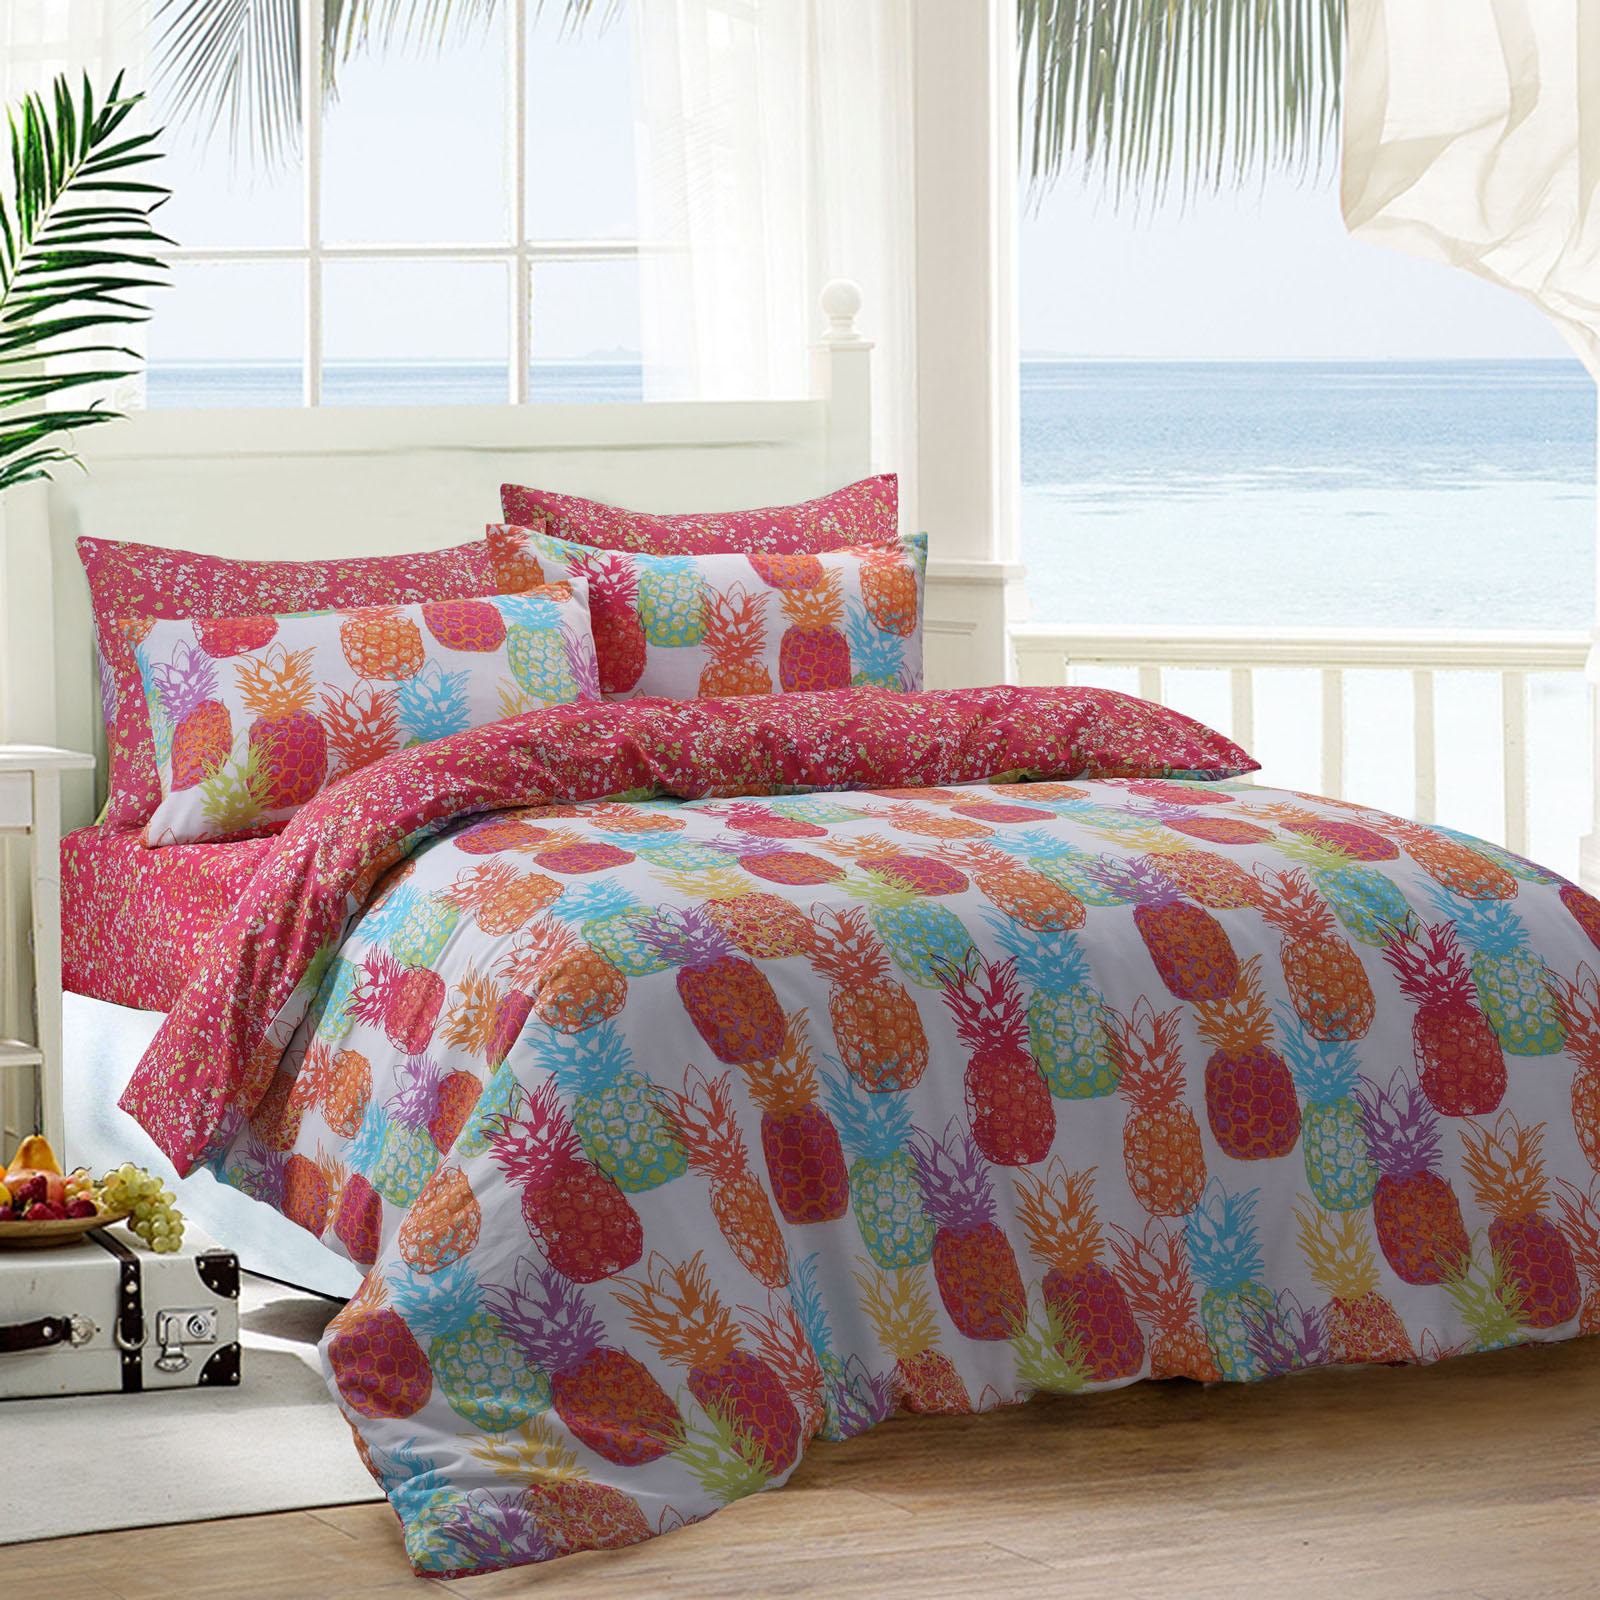 Pineapple U2013 Duvet Cover Set